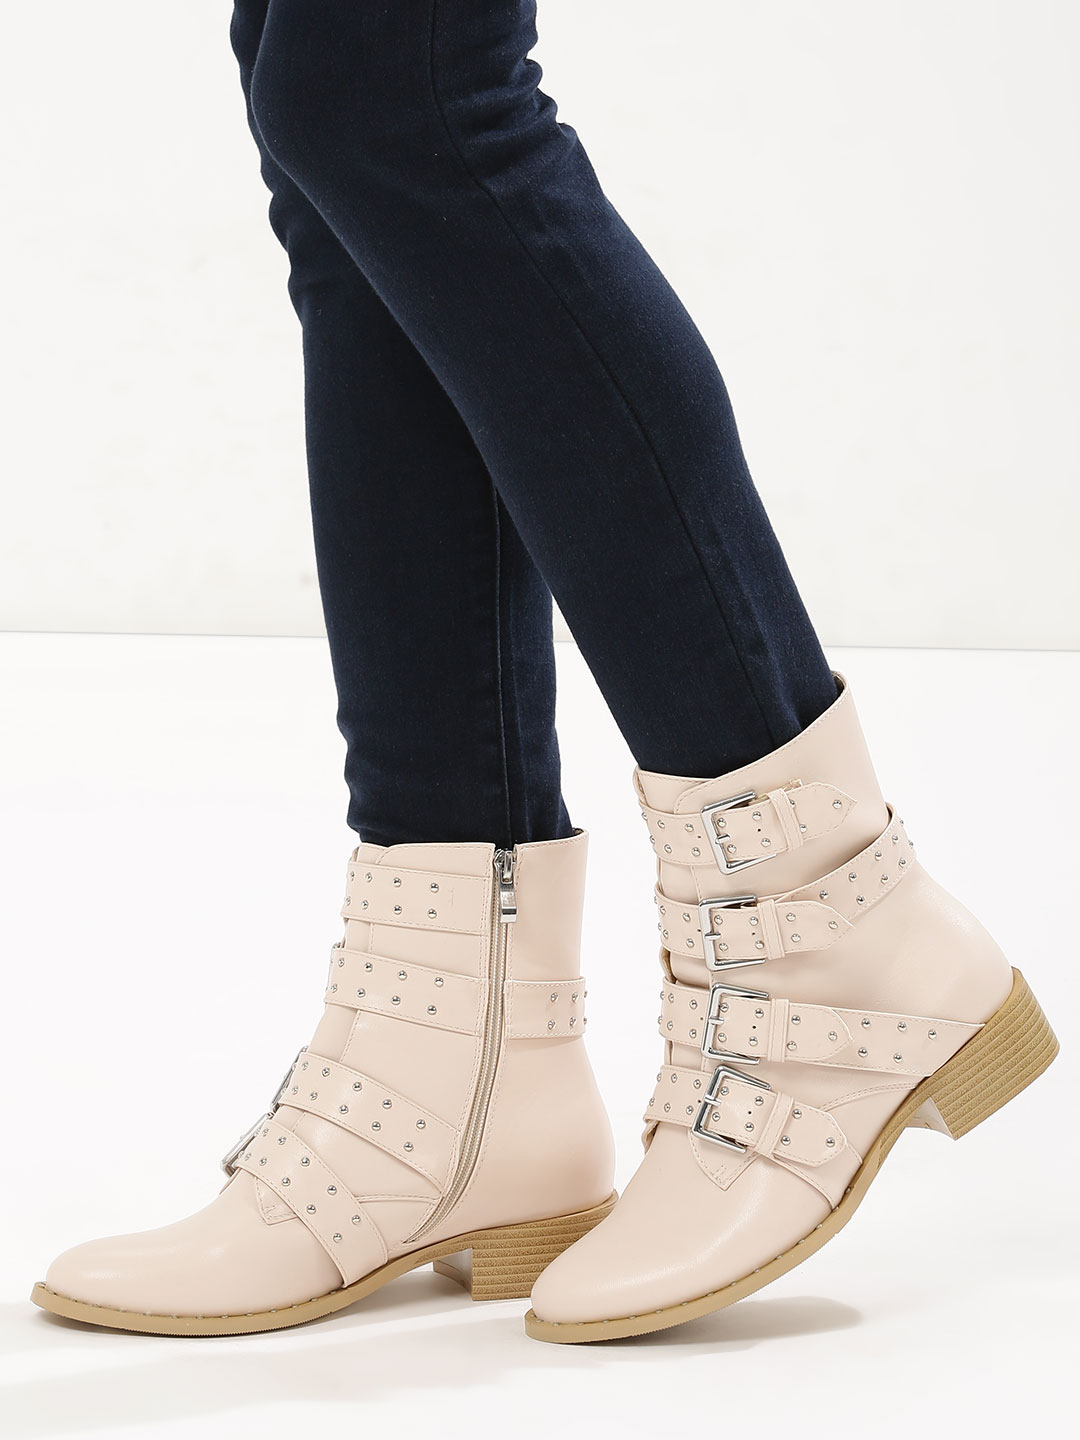 Velvet Army Nude Multi Buckle Ankle Boots 1